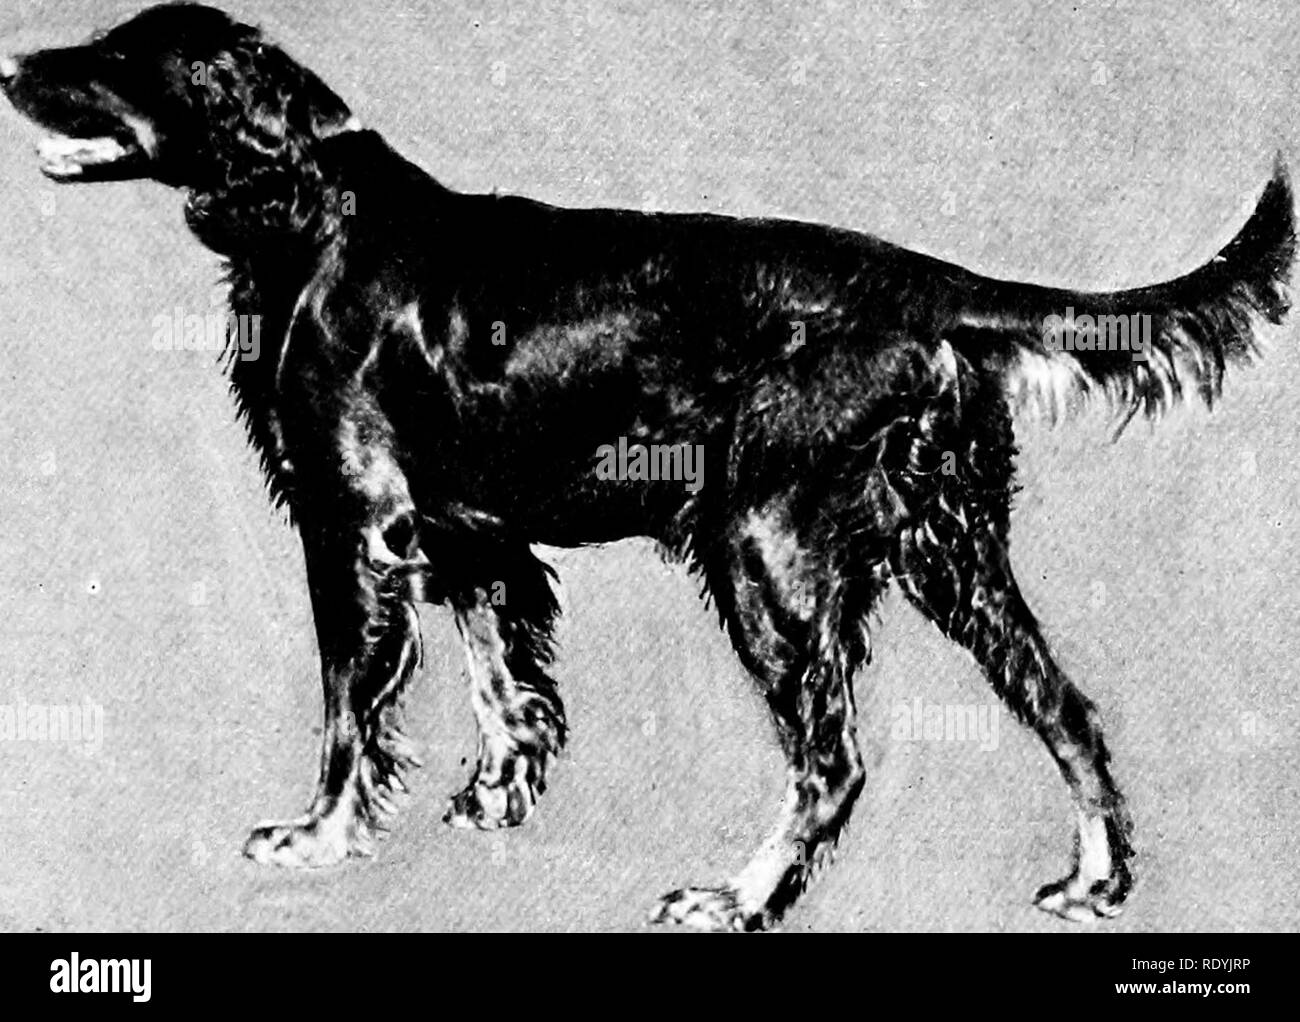 The Doc Black and White Stock Photos & Images - Page 3 - Alamy